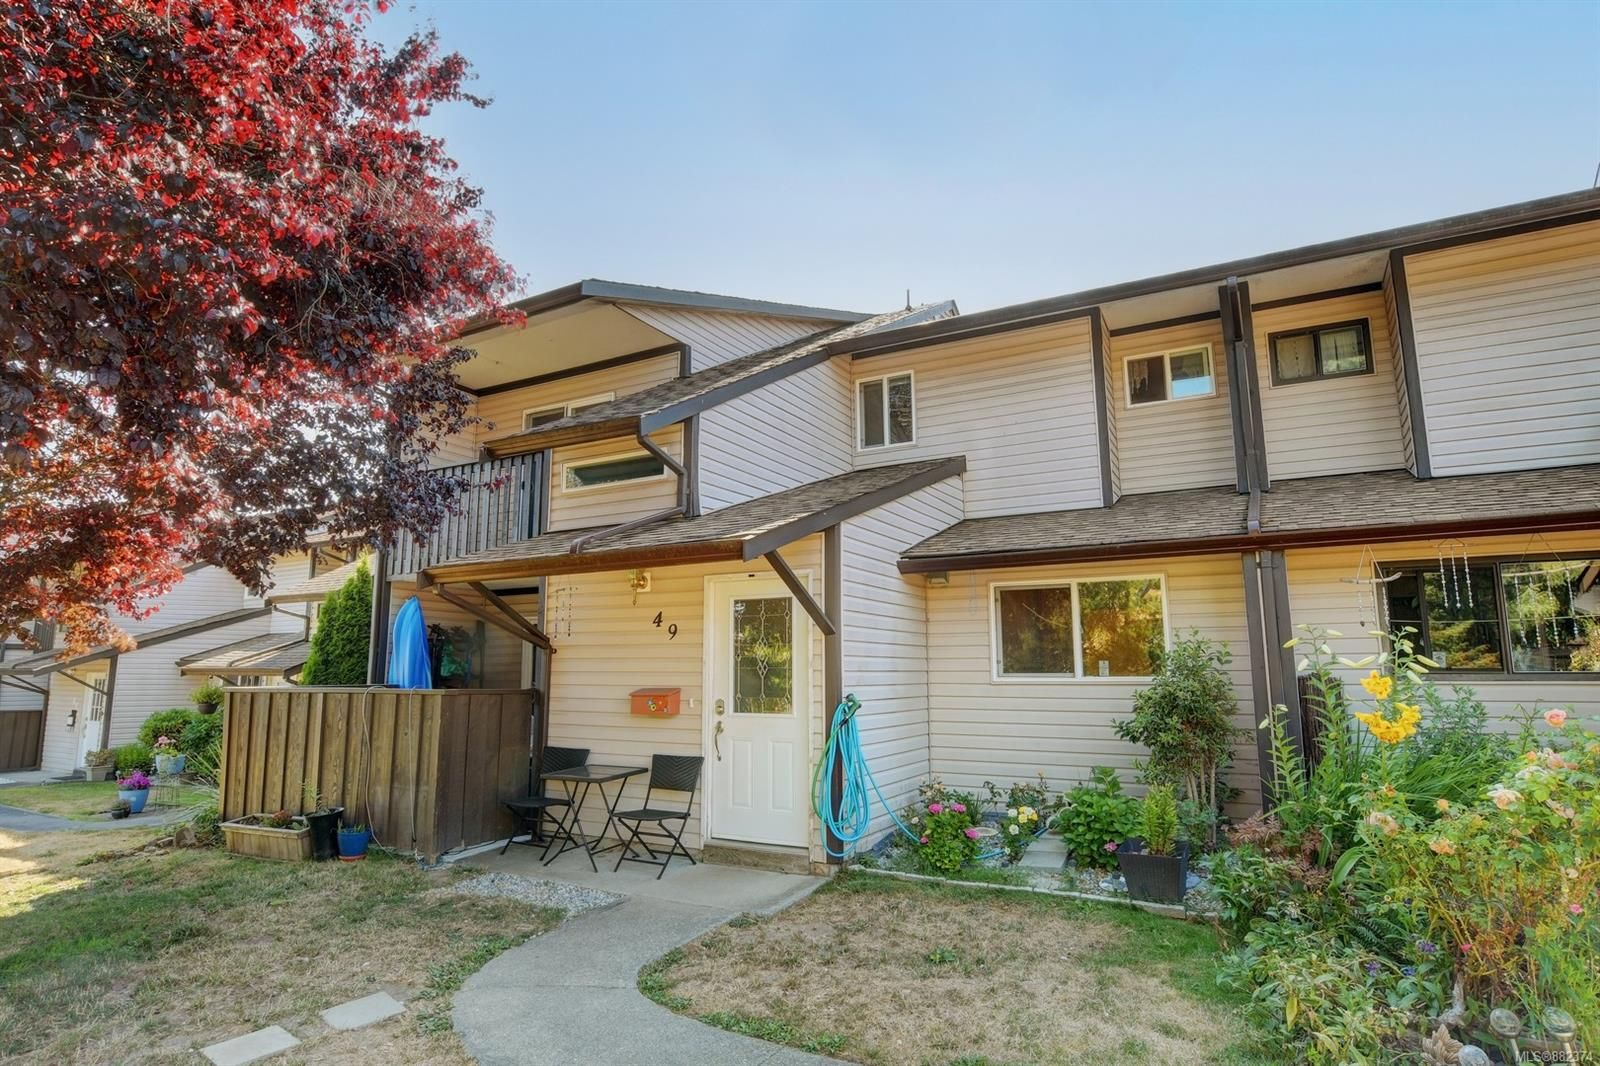 Main Photo: 49 1506 Admirals Rd in : VR Glentana Row/Townhouse for sale (View Royal)  : MLS®# 882374